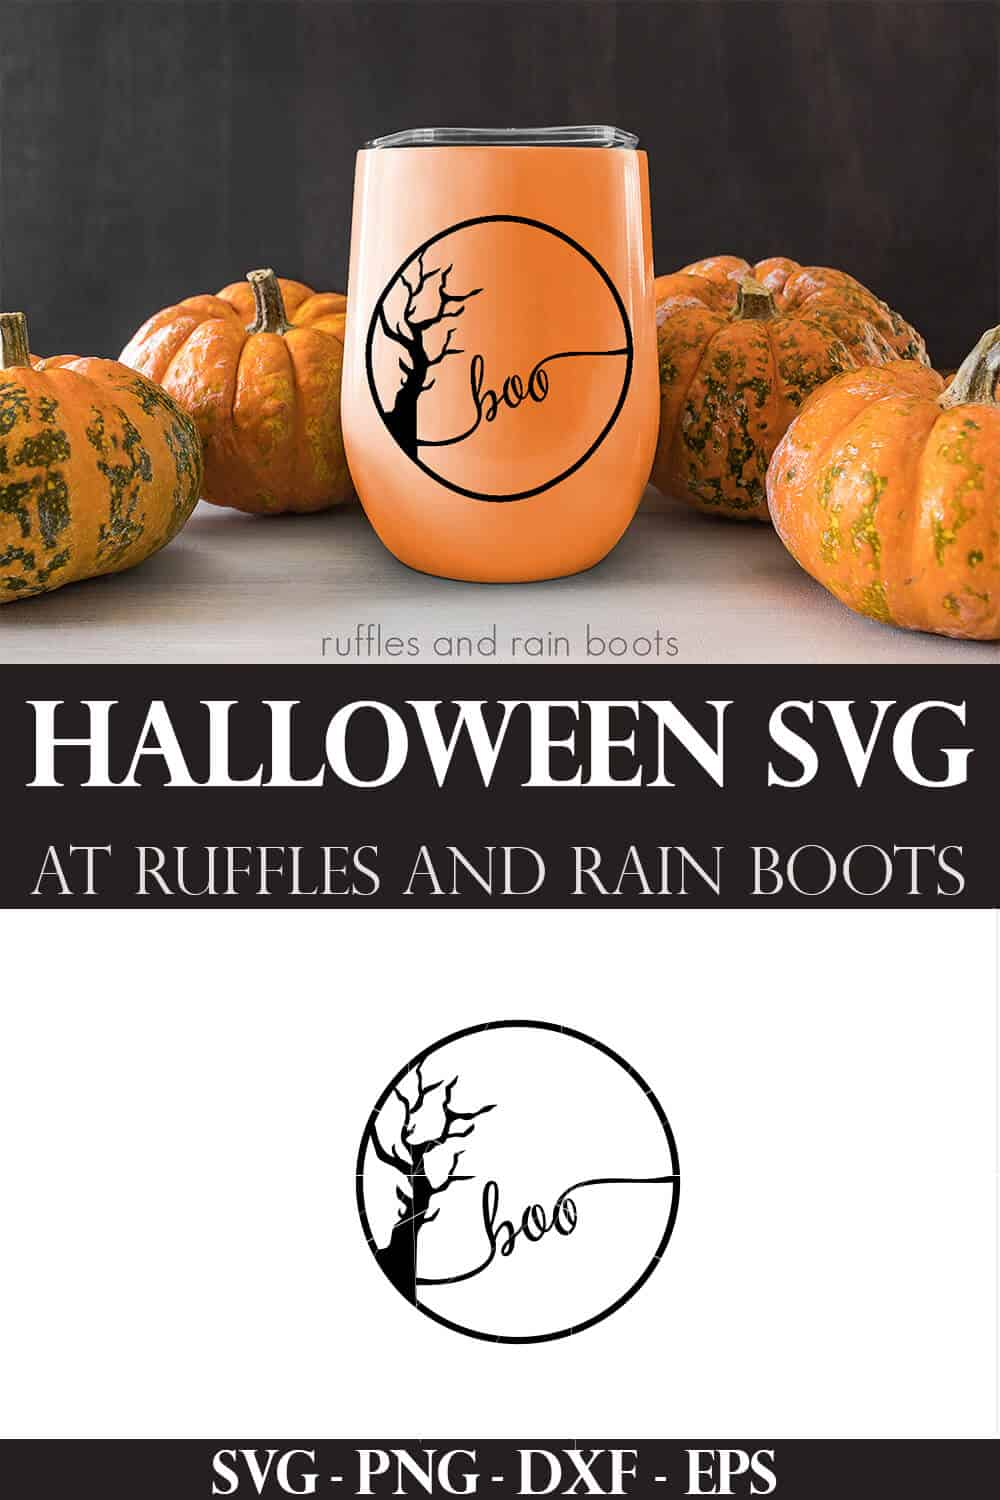 collage of Halloween SVG in black on orange tumbler with pumpkins and wood background